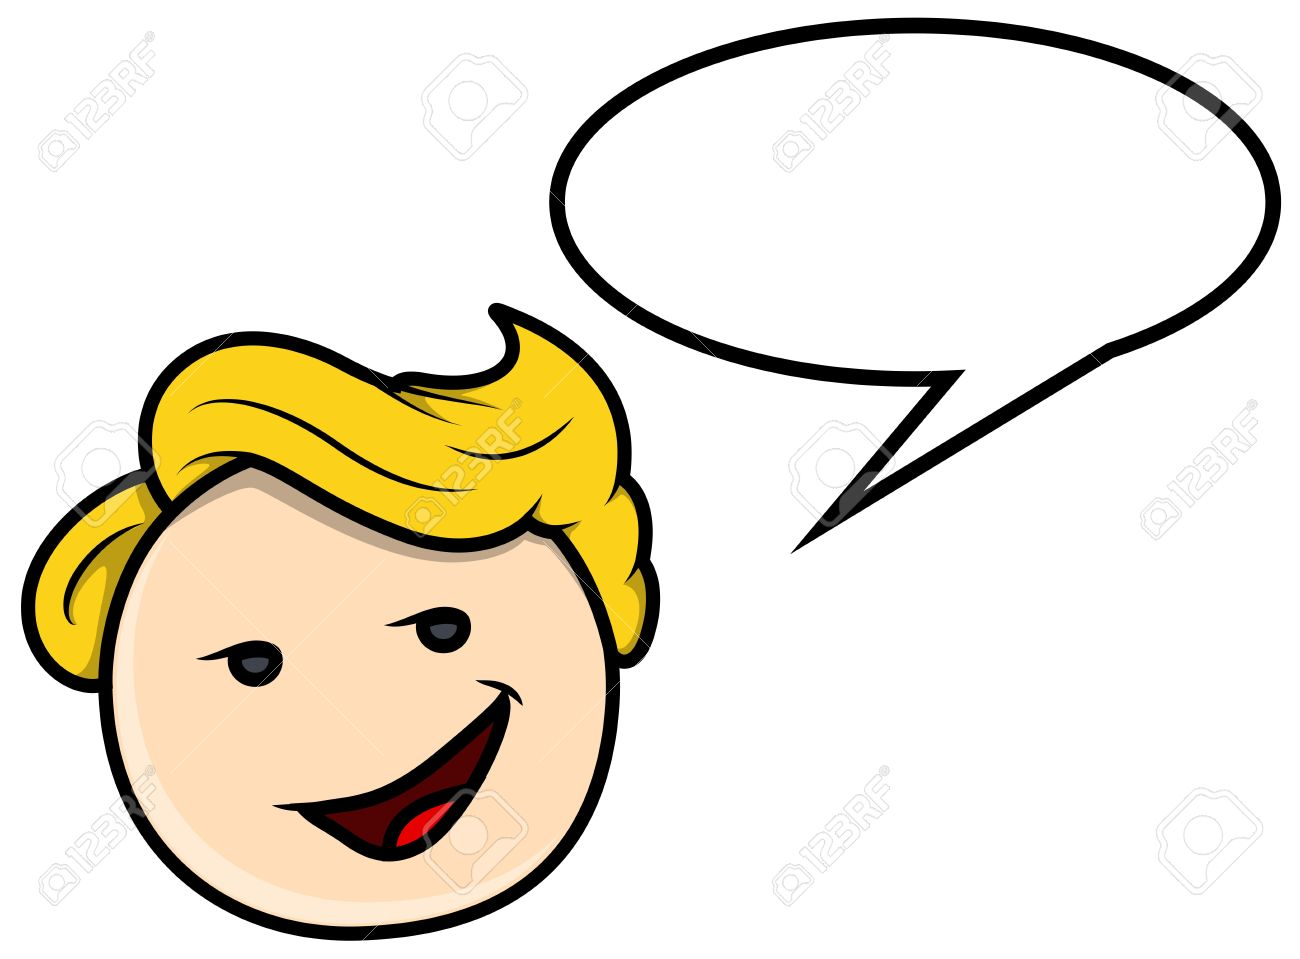 Image result for saying clipart speech bubble